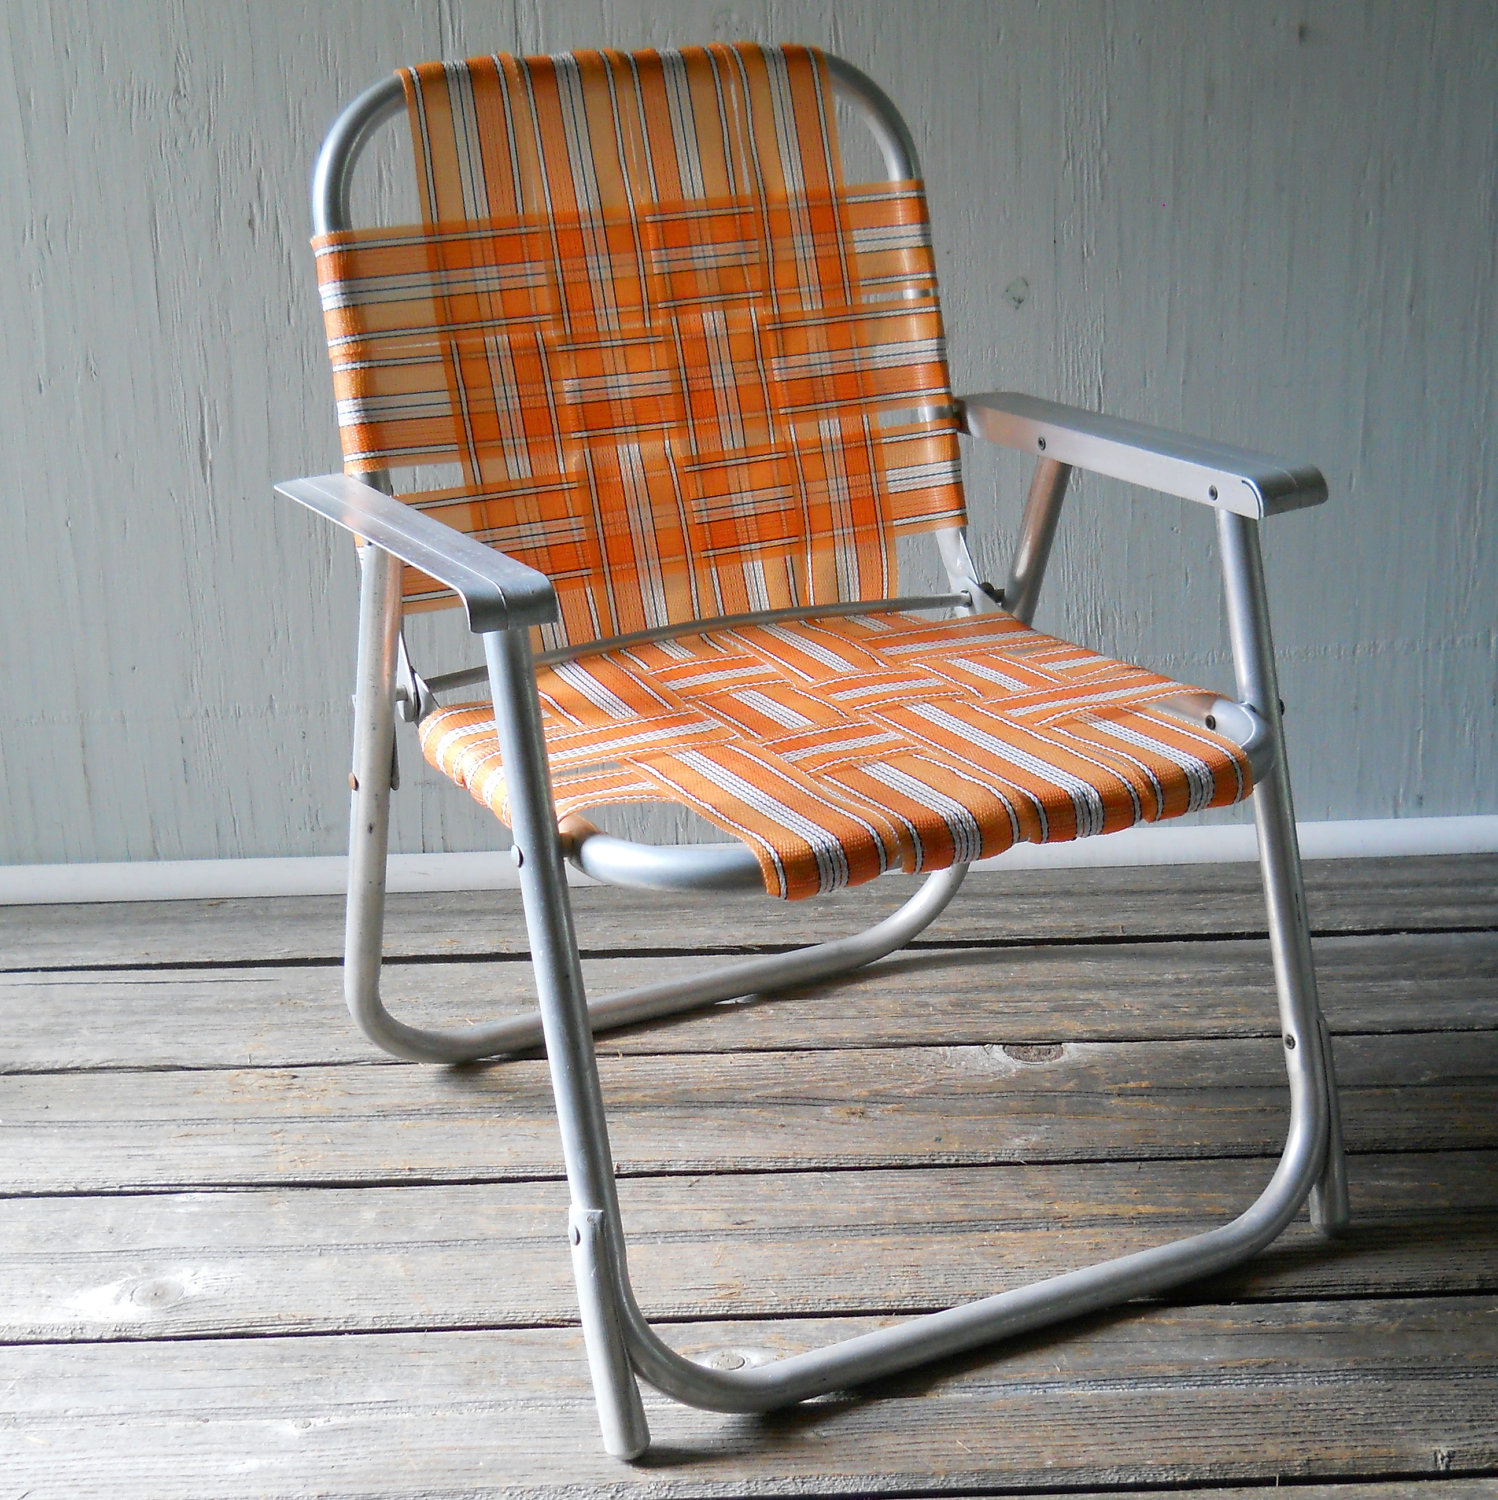 retro garden chair. retro lawn chair - Retro Lawn Chair The Best Chair Review Blog